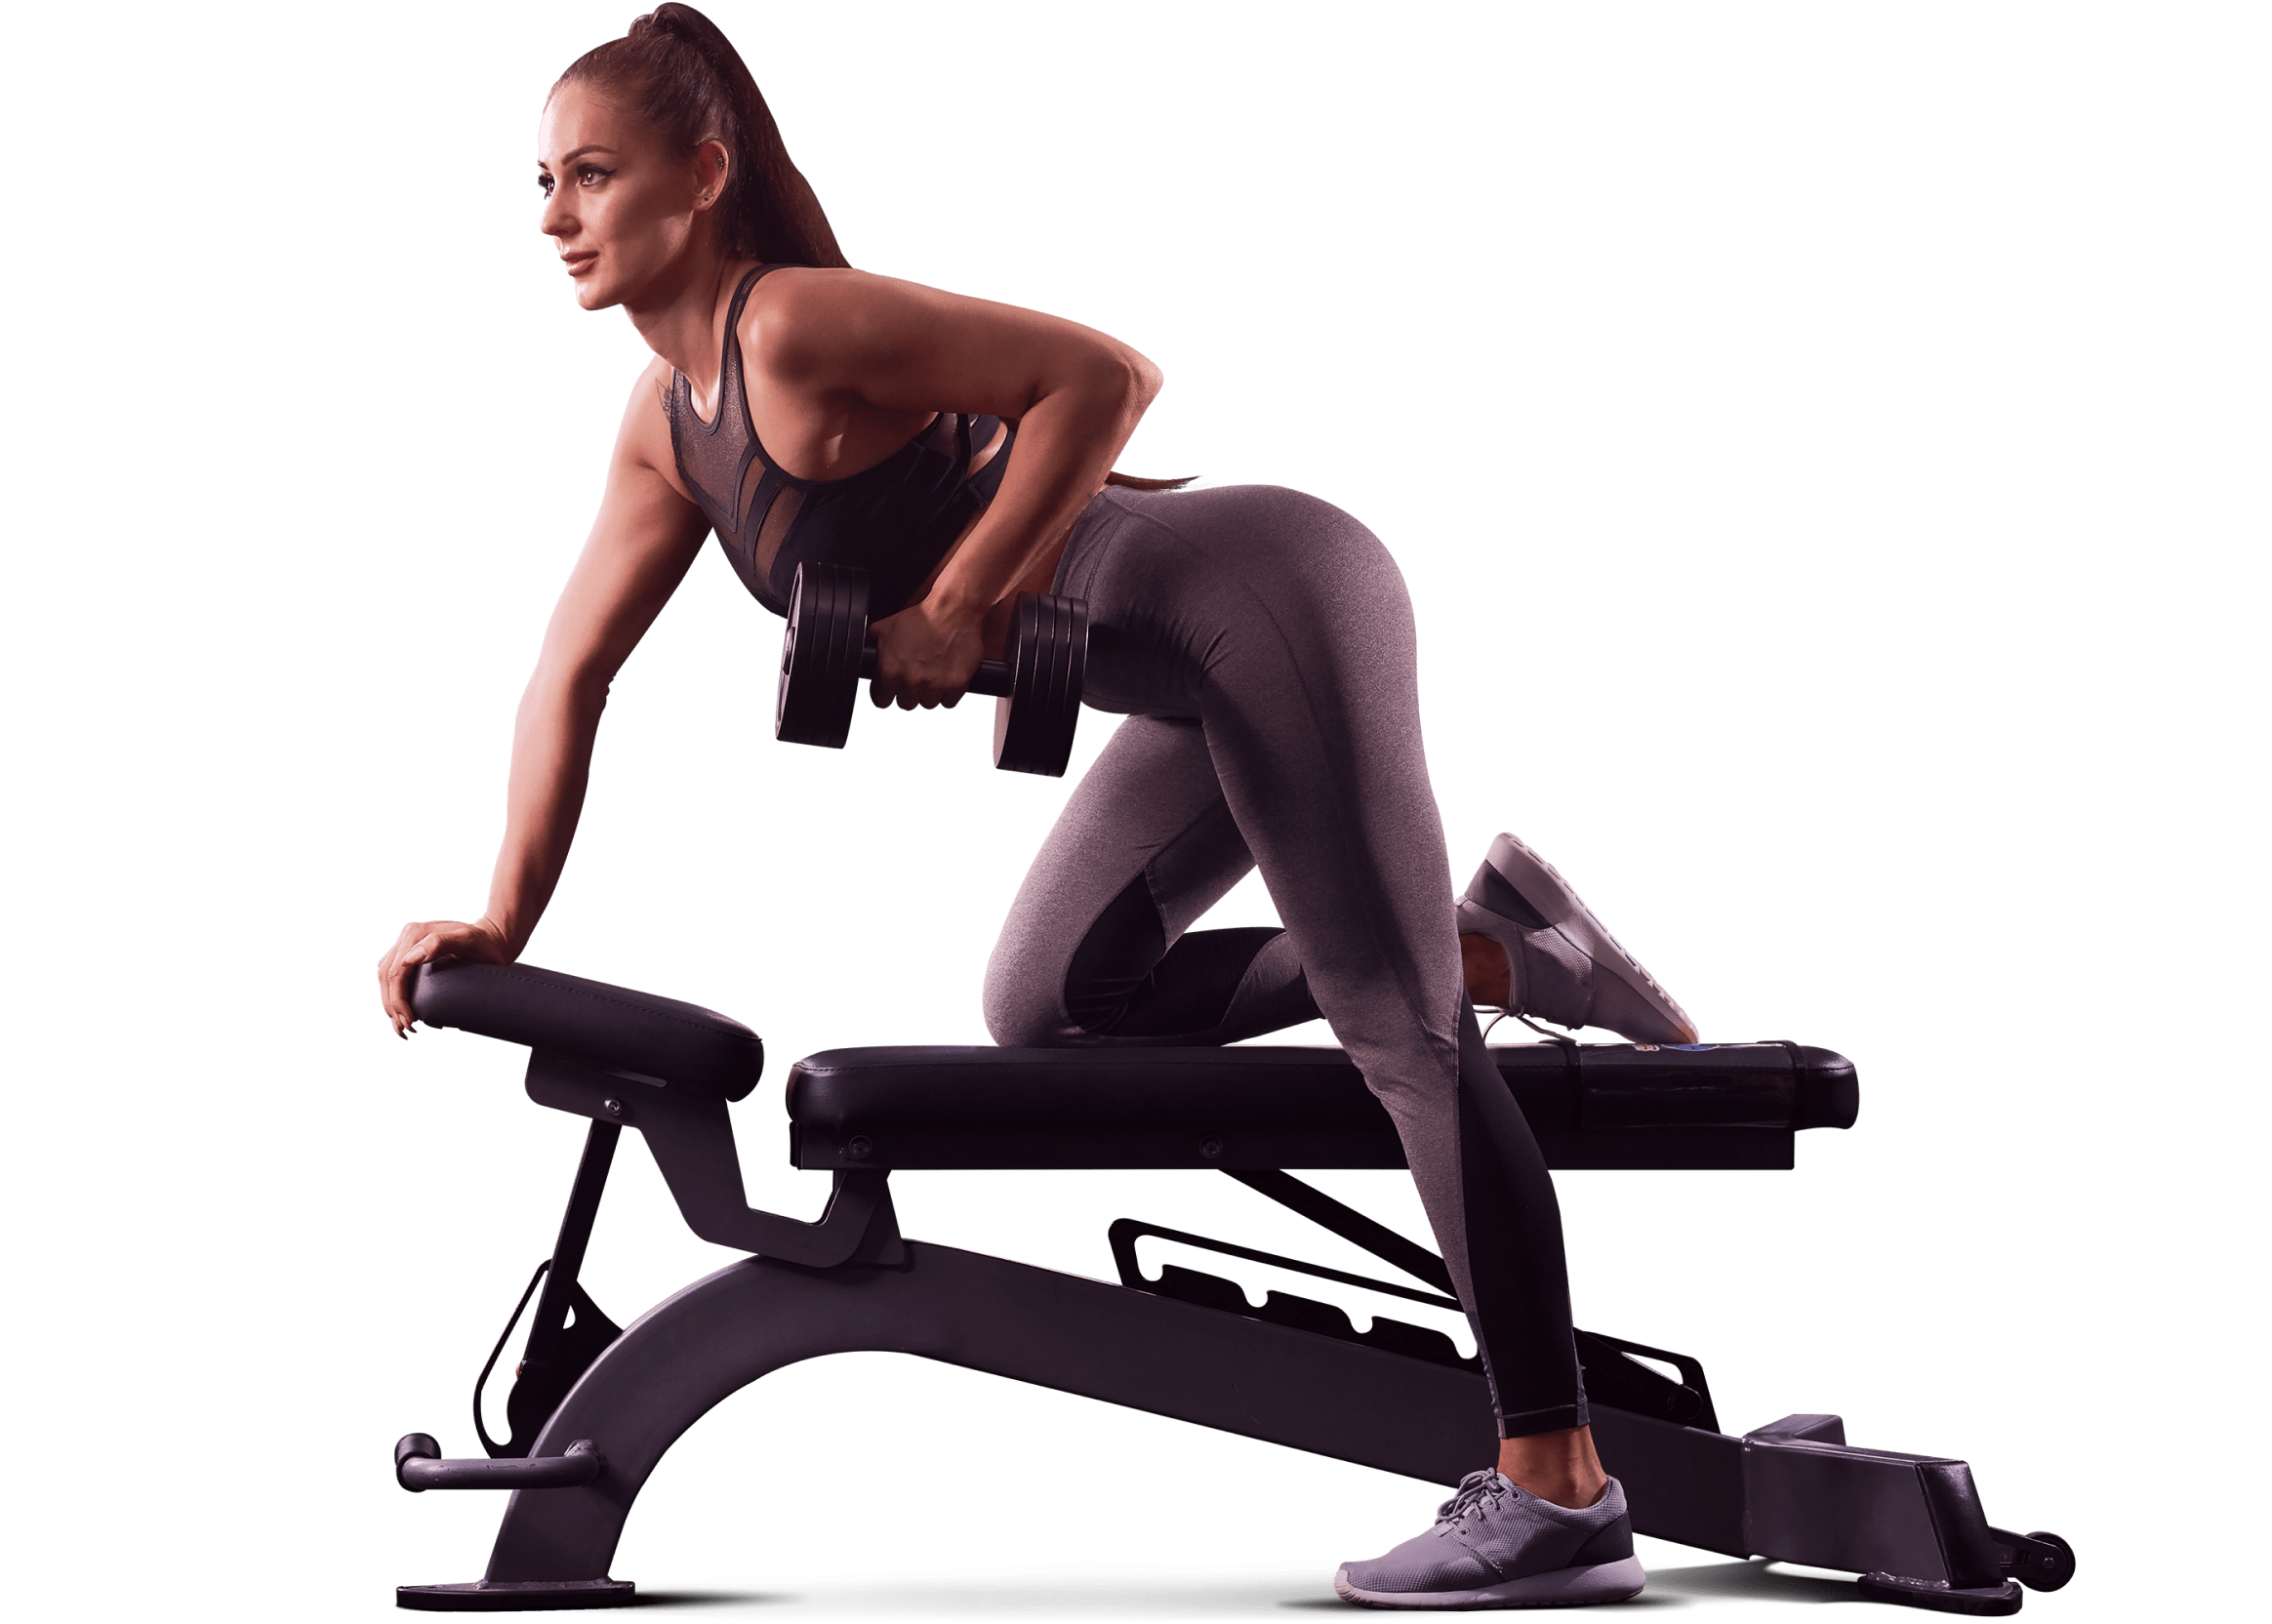 Woman performing a dumb-bell exercise at the gym